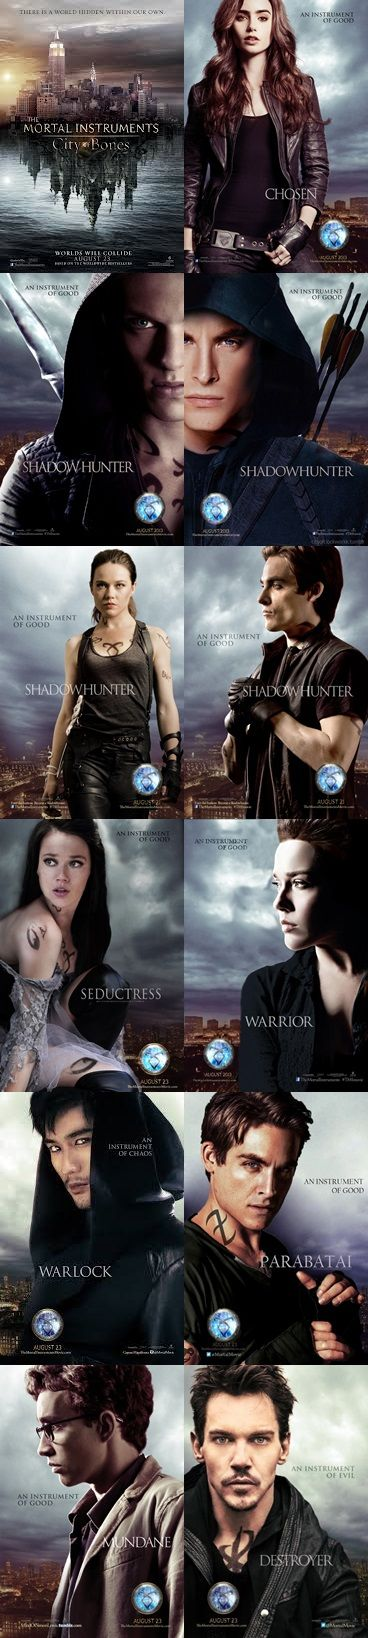 TMI : Clary Fary - Jace Wayland - Alec Lightwood - Isabelle Lightwood - Simon Lewis - Valentine Morgenstern - Magnus Bane